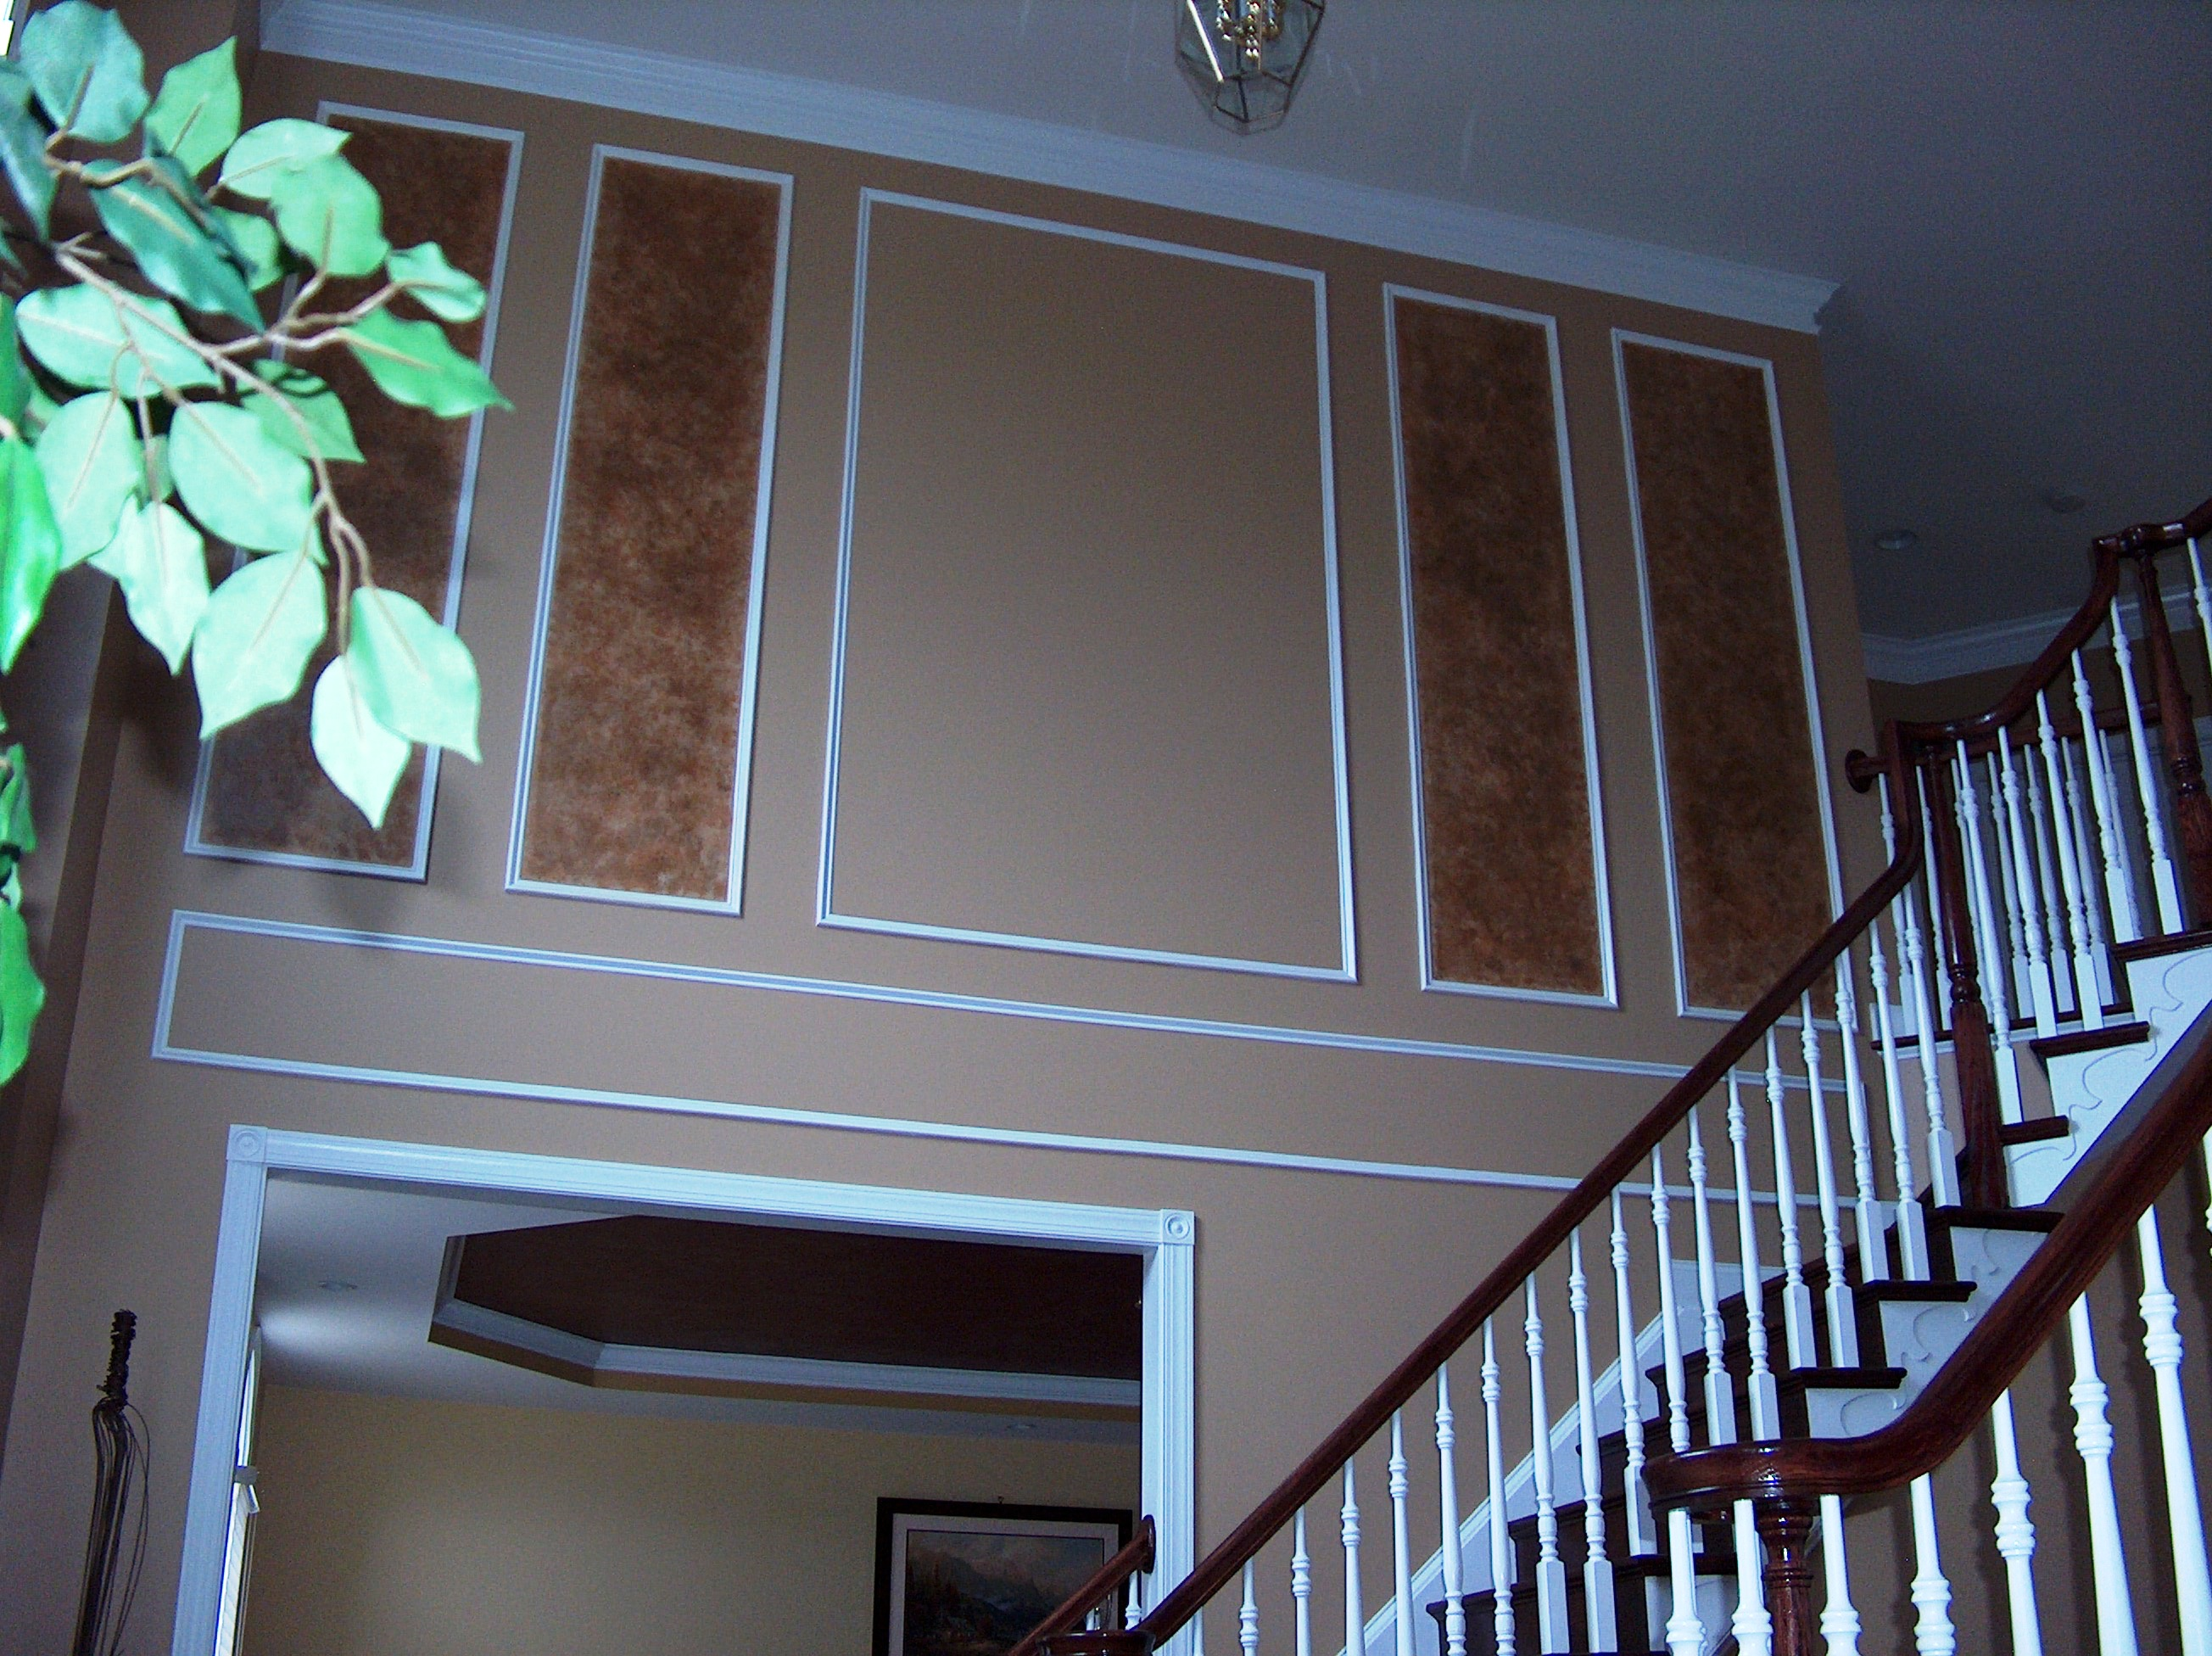 decor wall another throughout trim finished with builders renovation beautiful the project team up at just ca valley decorative molding boards moldings windsorone this streamline mill pin